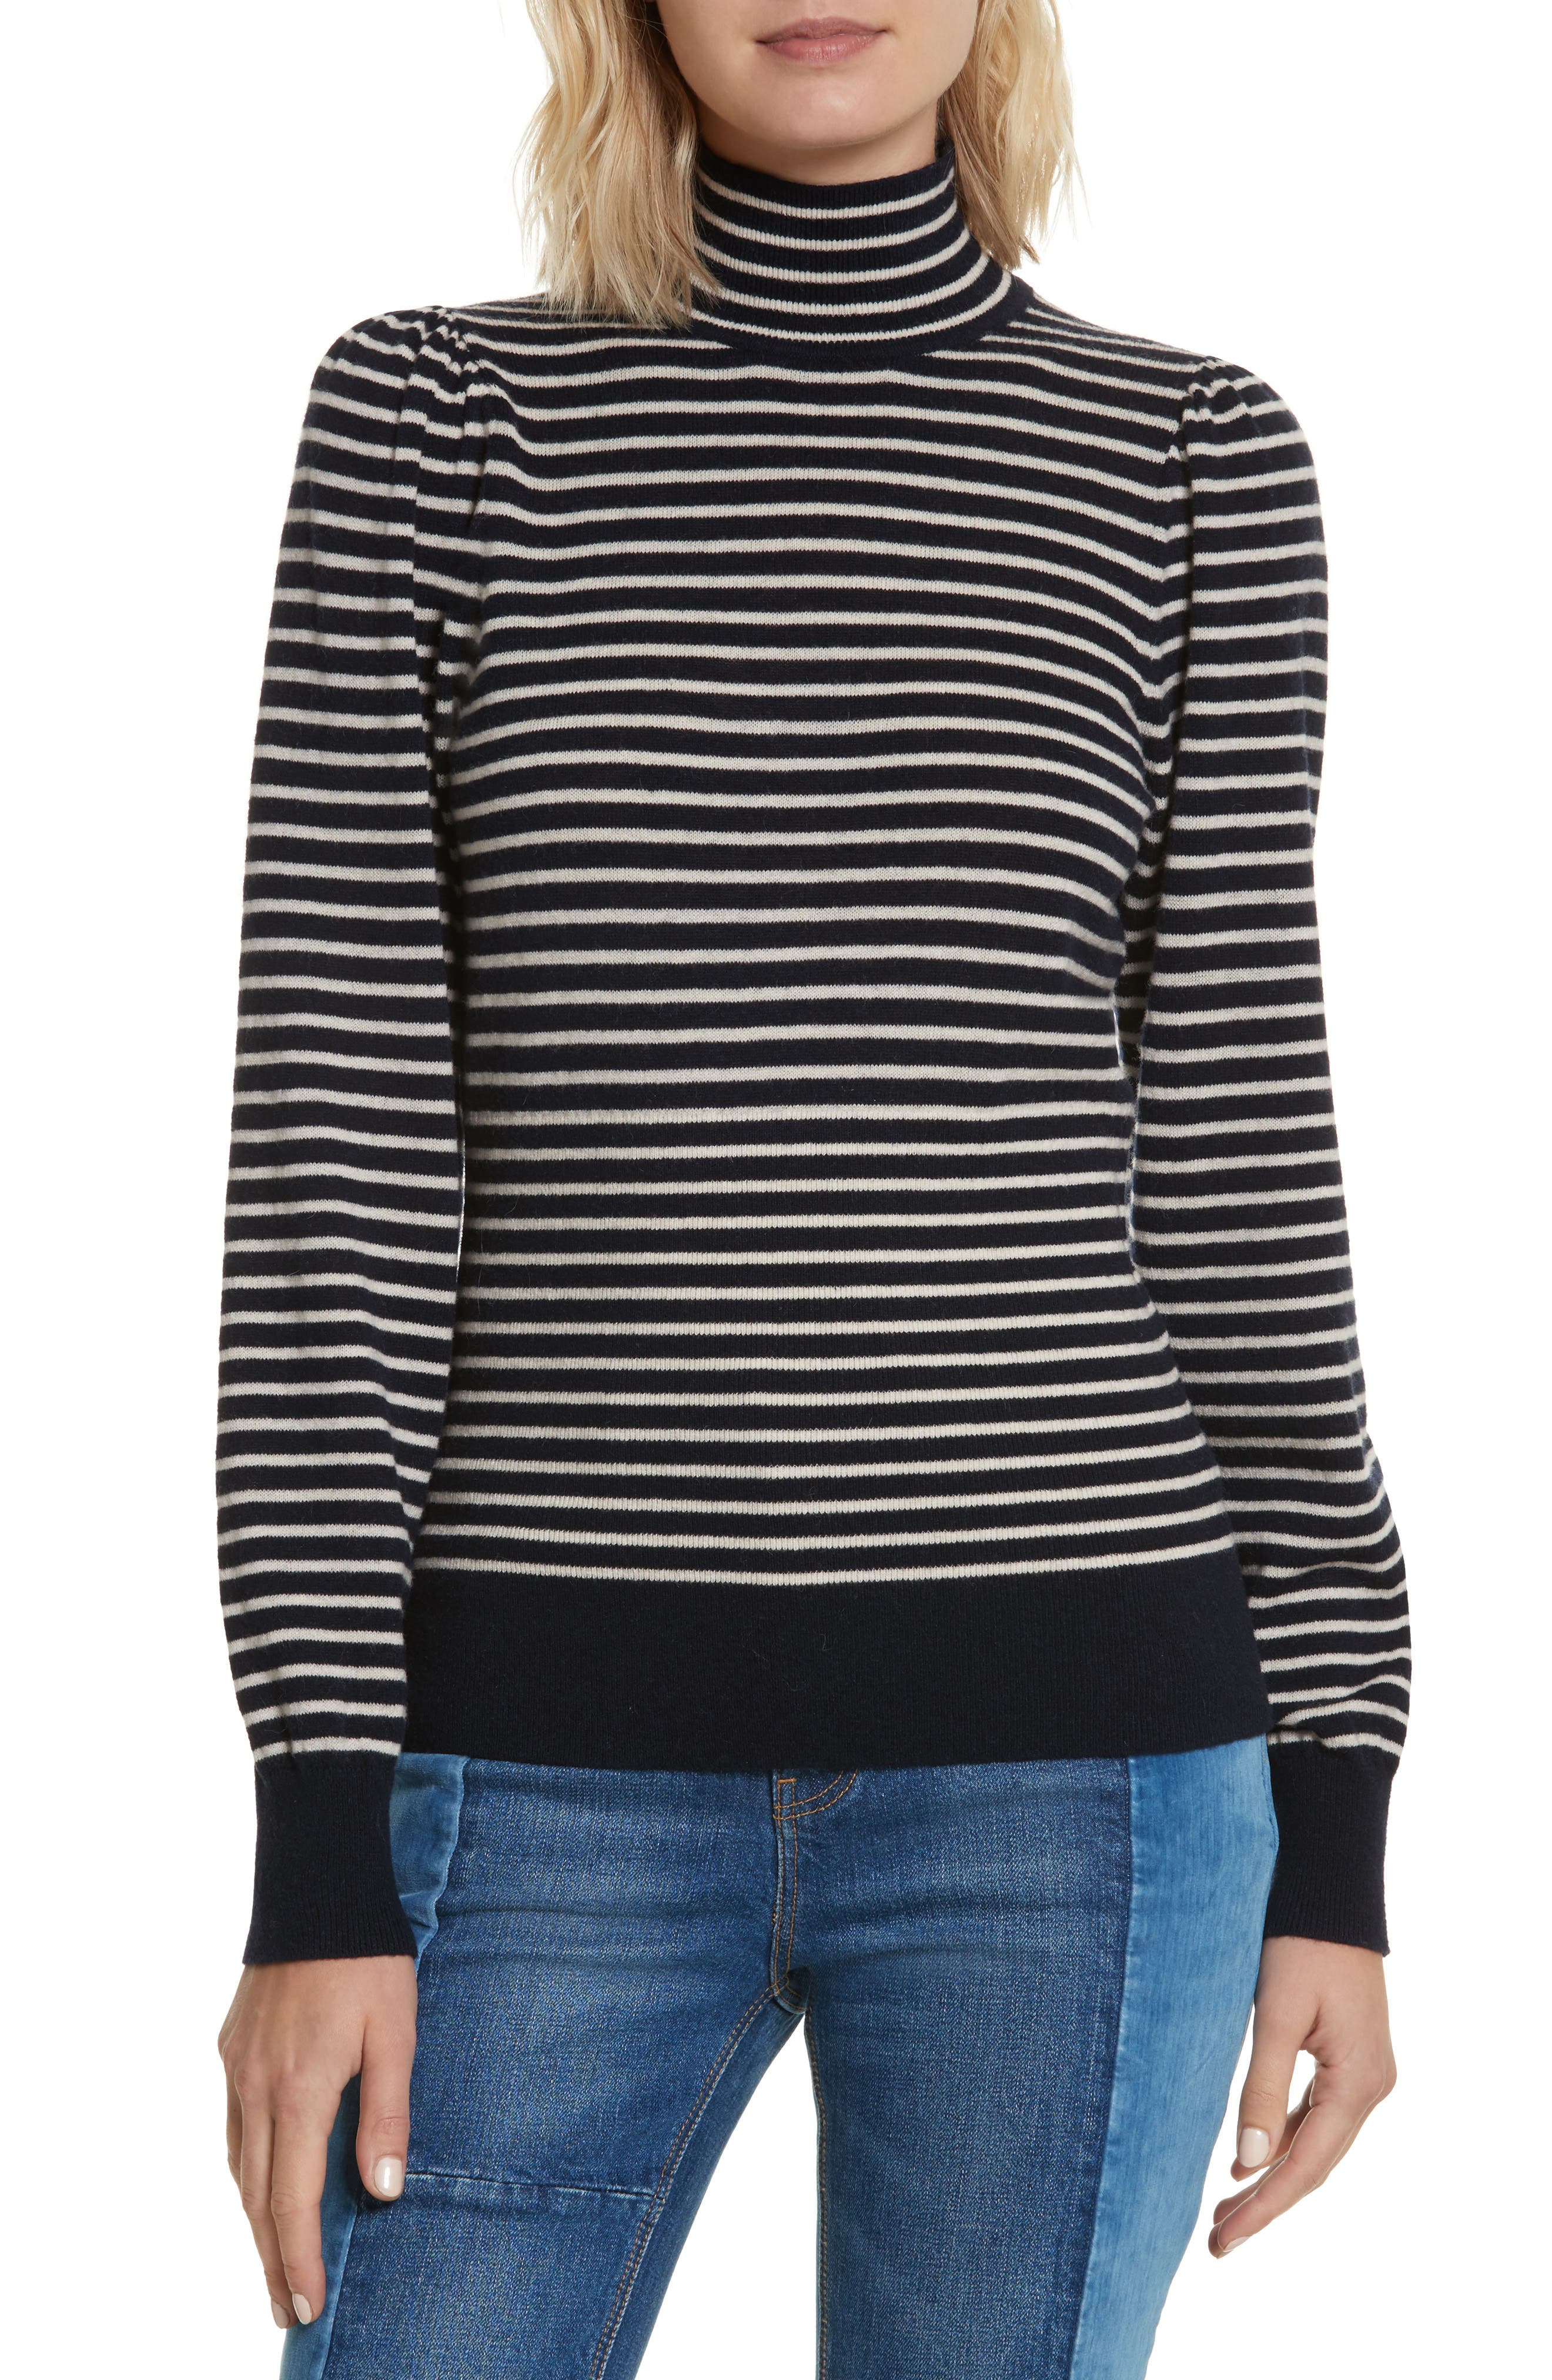 La Vie Rebecca Taylor Stripe Stretch Wool Turtleneck